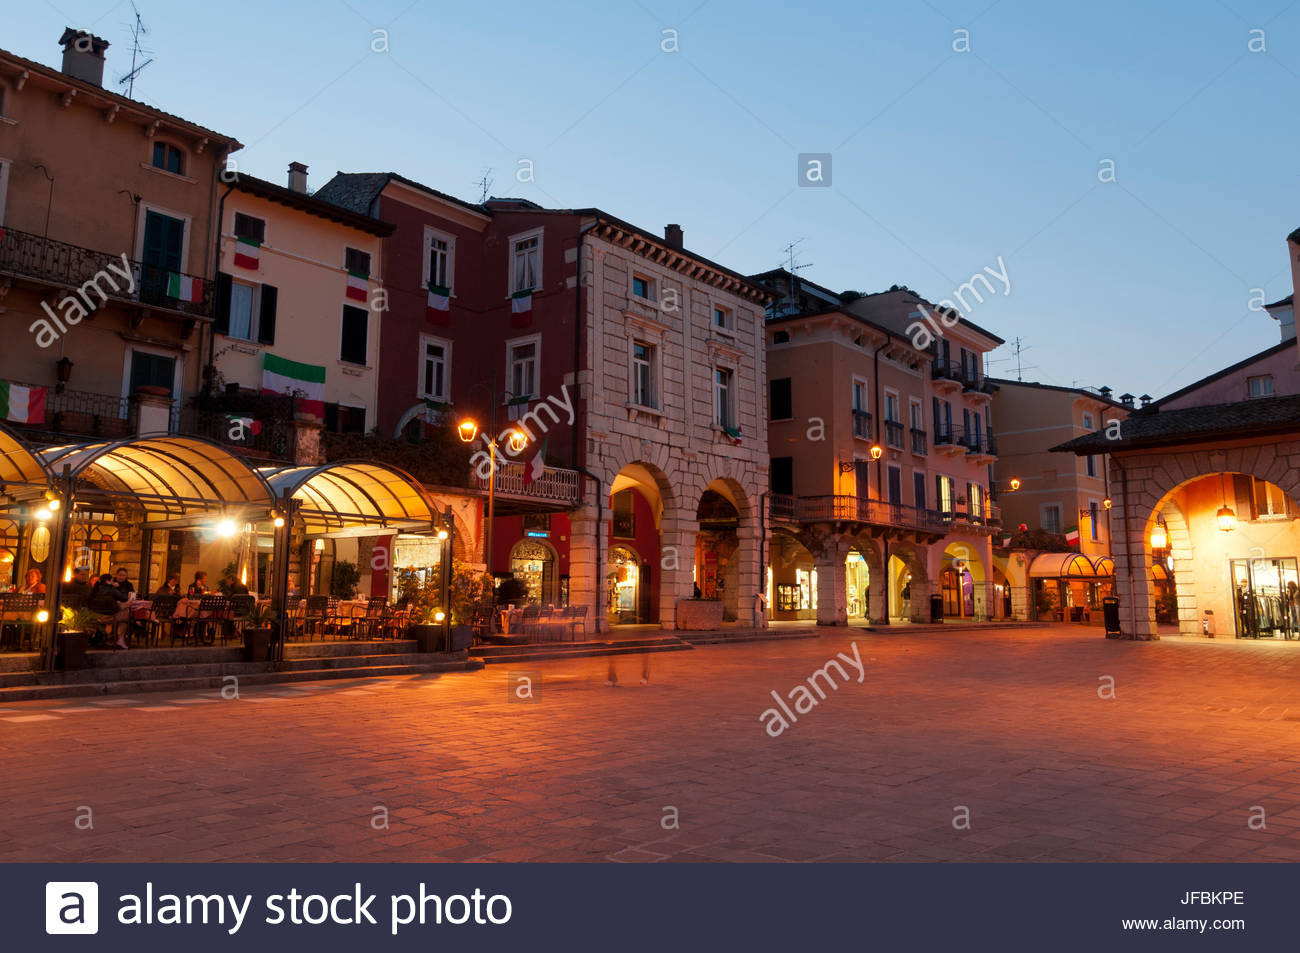 Desenzano del Garda, lined with romantically lit restaurants and shops at dusk. - Stock Image